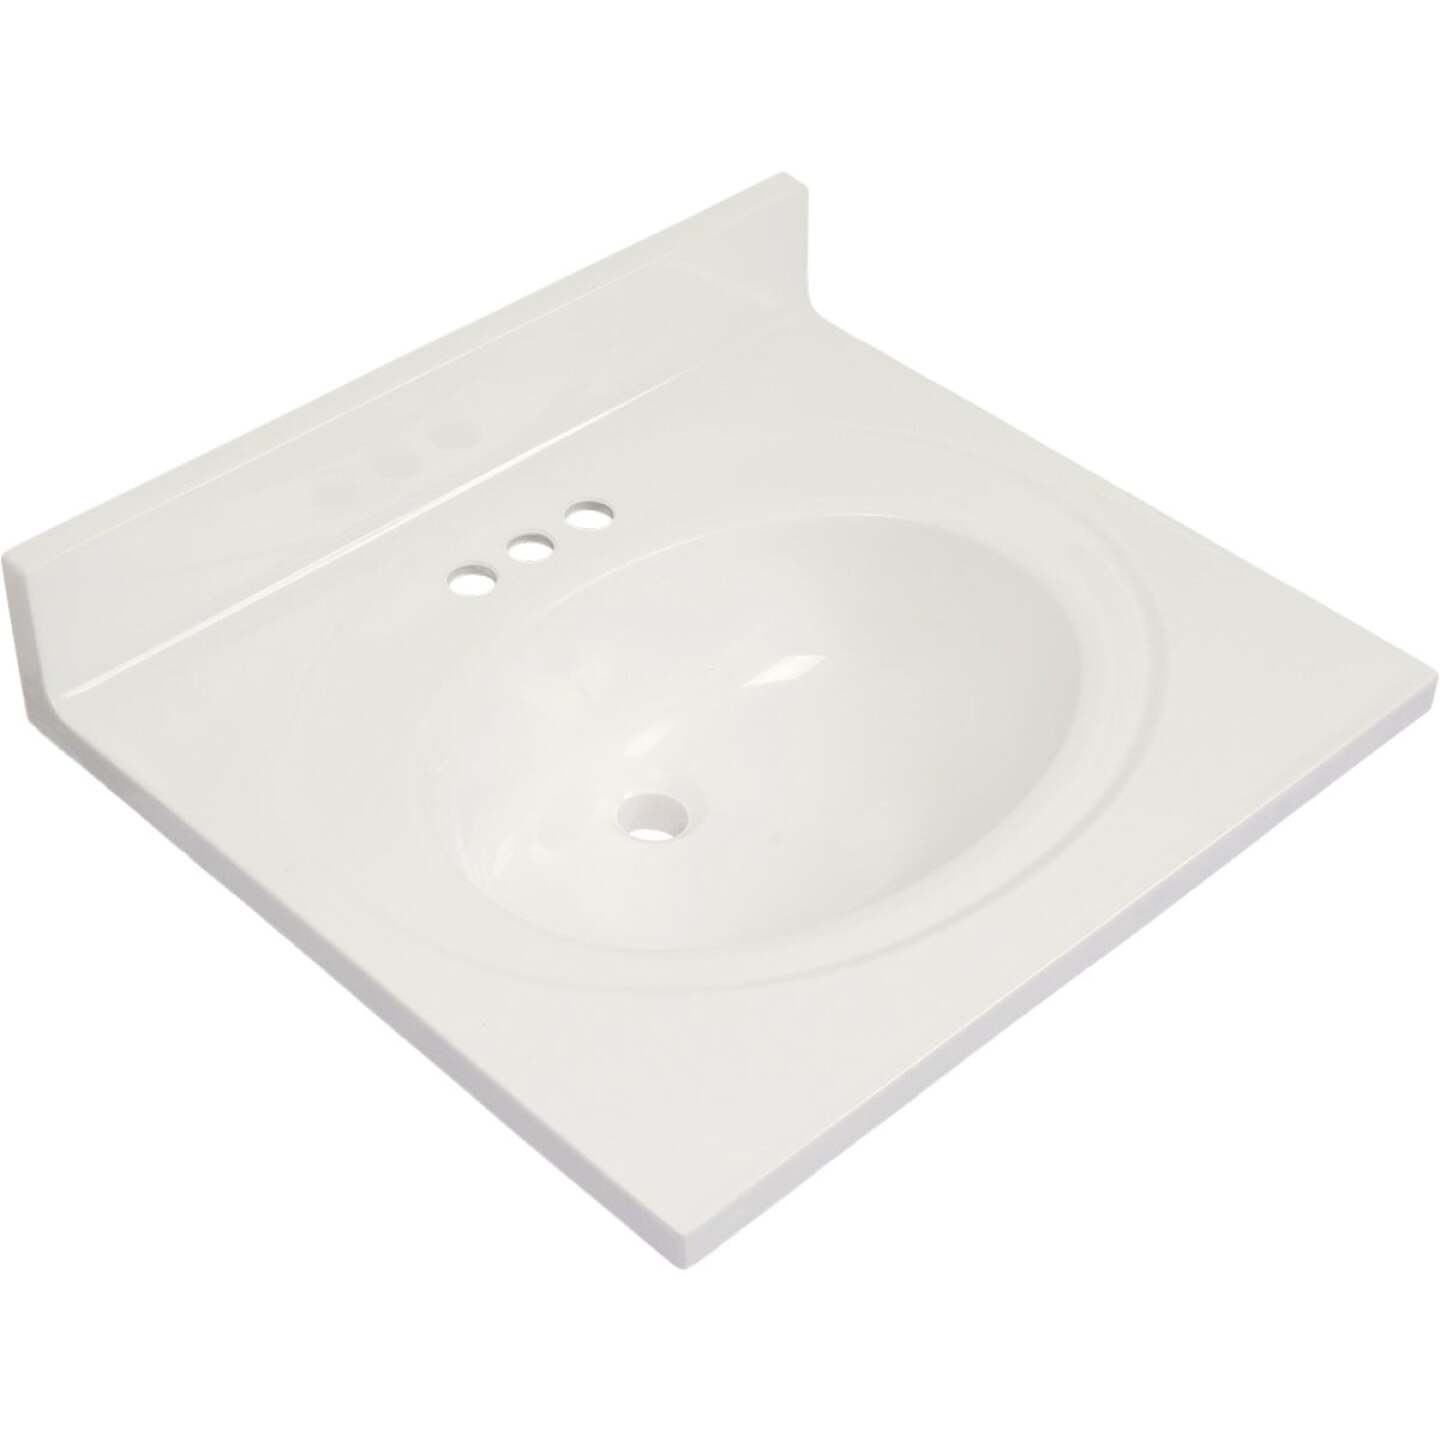 Modular Vanity Tops 25 In. W x 22 In. D Solid White Cultured Marble Vanity Top with Oval Bowl Image 1